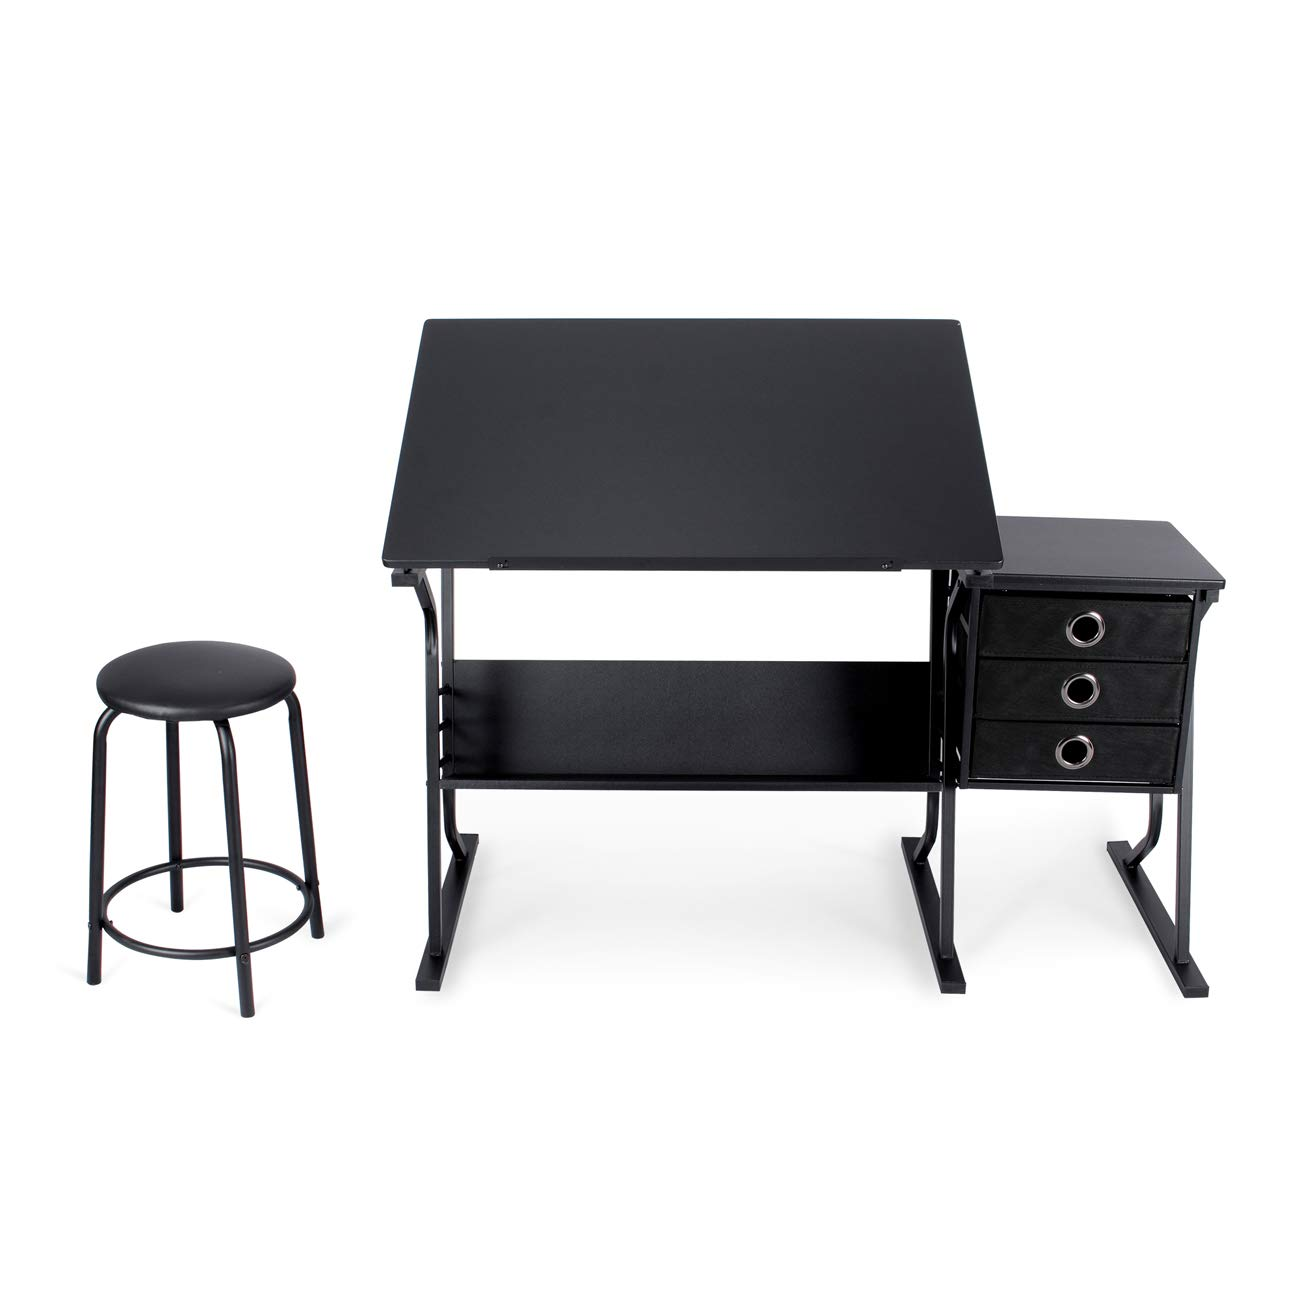 Belleze Adjustable Tabletop Drafting and Drawing Desk w Padded Stool and 3 Storage Drawers, Black